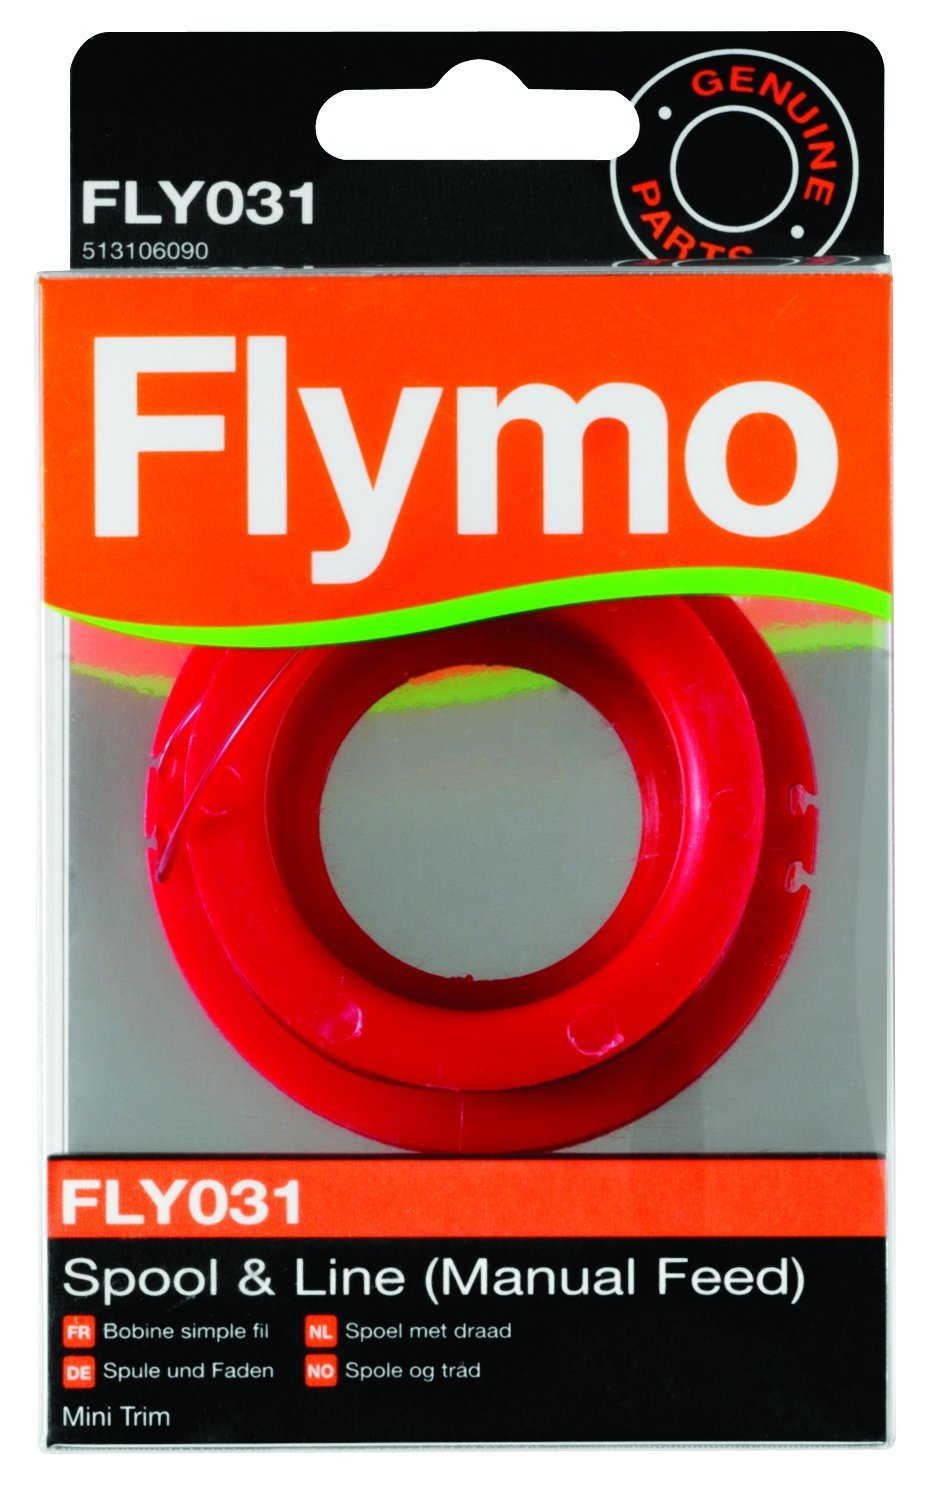 Flymo FLY031 Single Line Manual Feed Spool and Line to Suit Mini Trim and Mini Trim ST - Red Husqvarna FL5131060-90/6